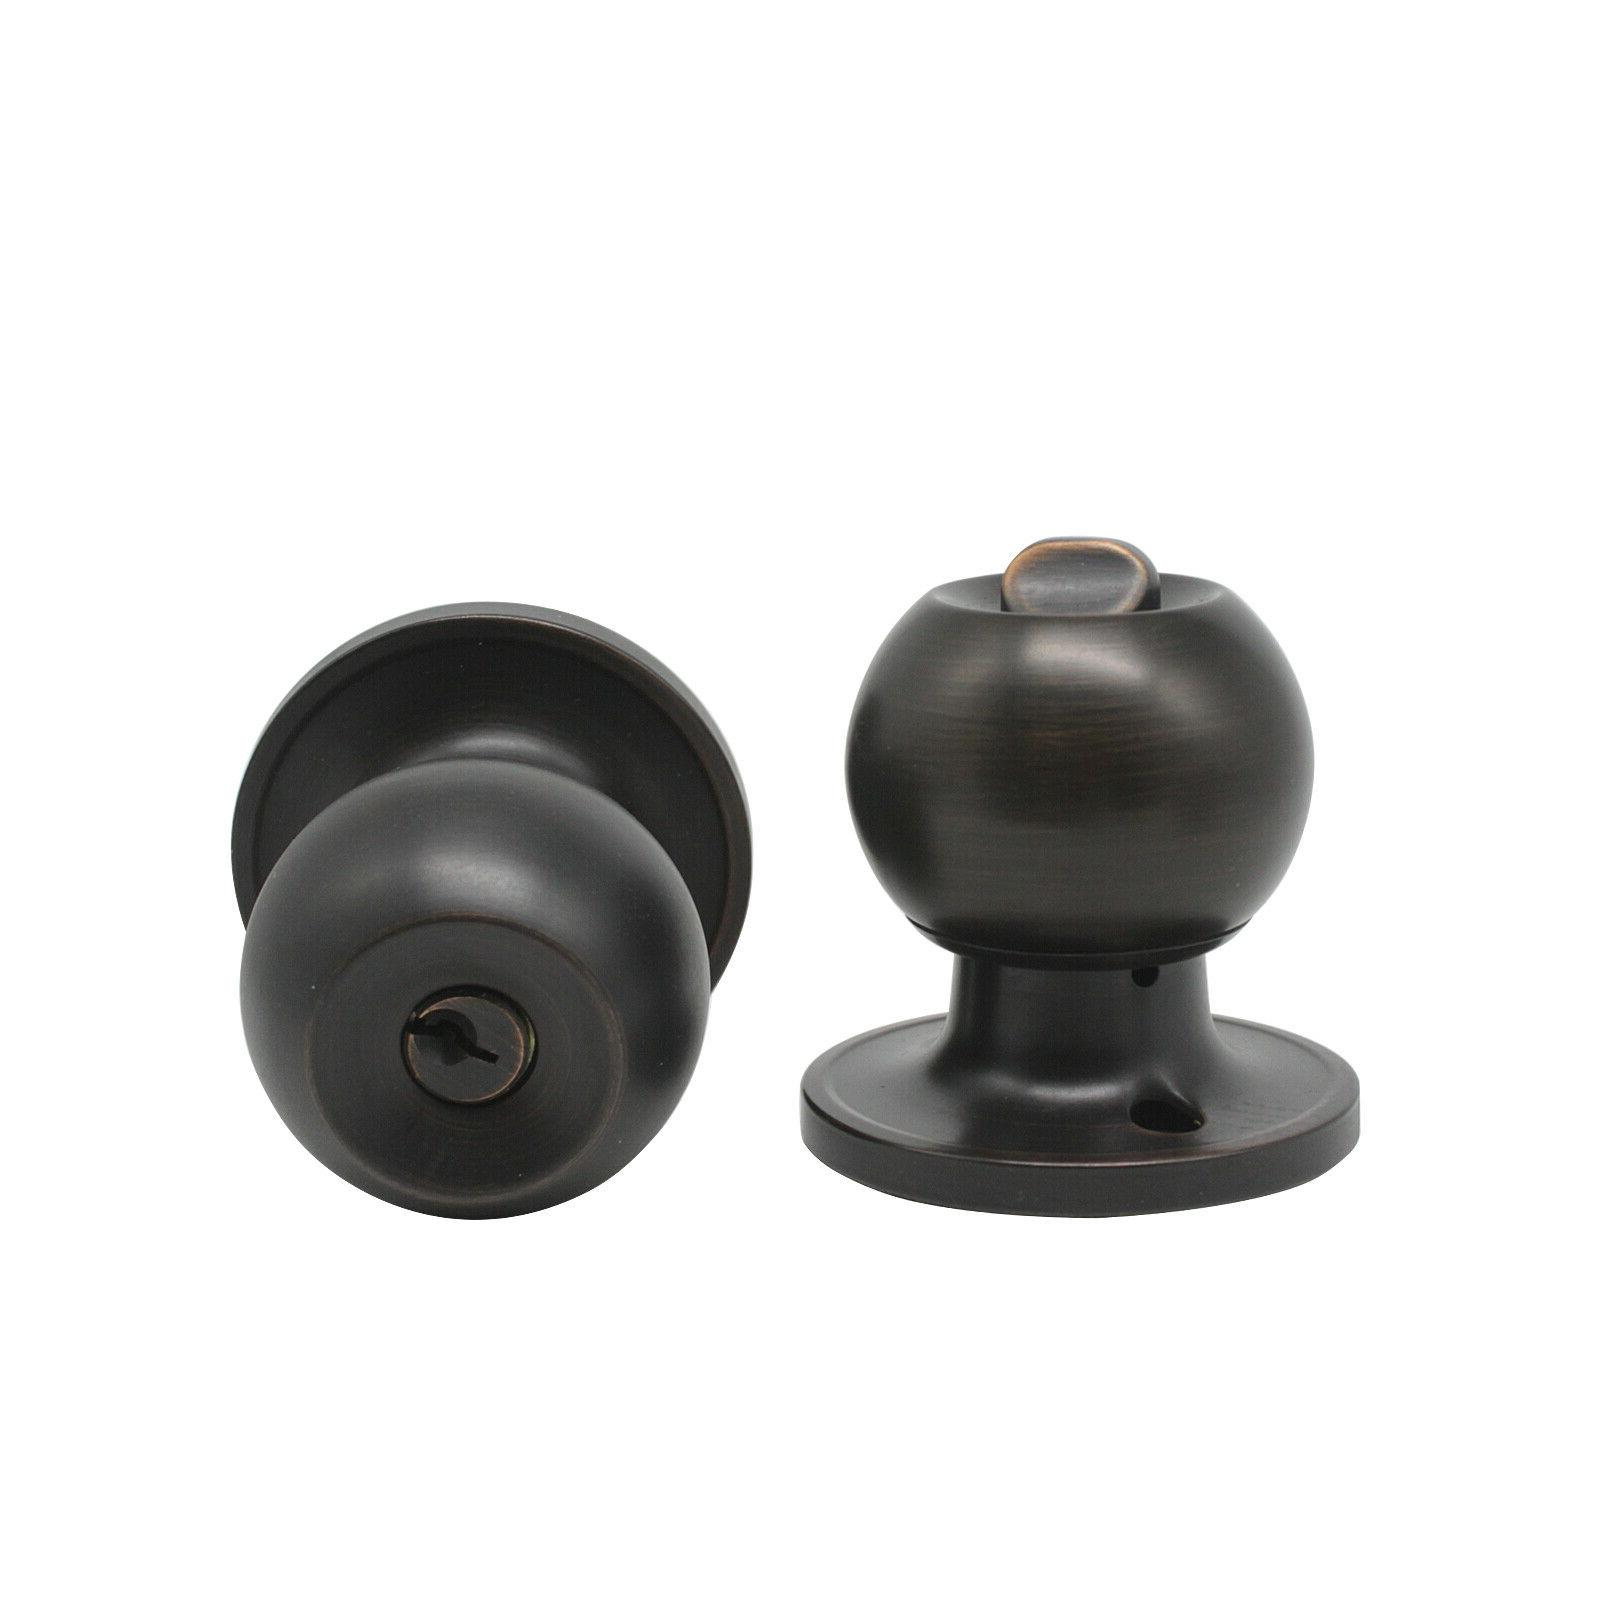 Oil Rubbed Bronze Handle Entry Passage